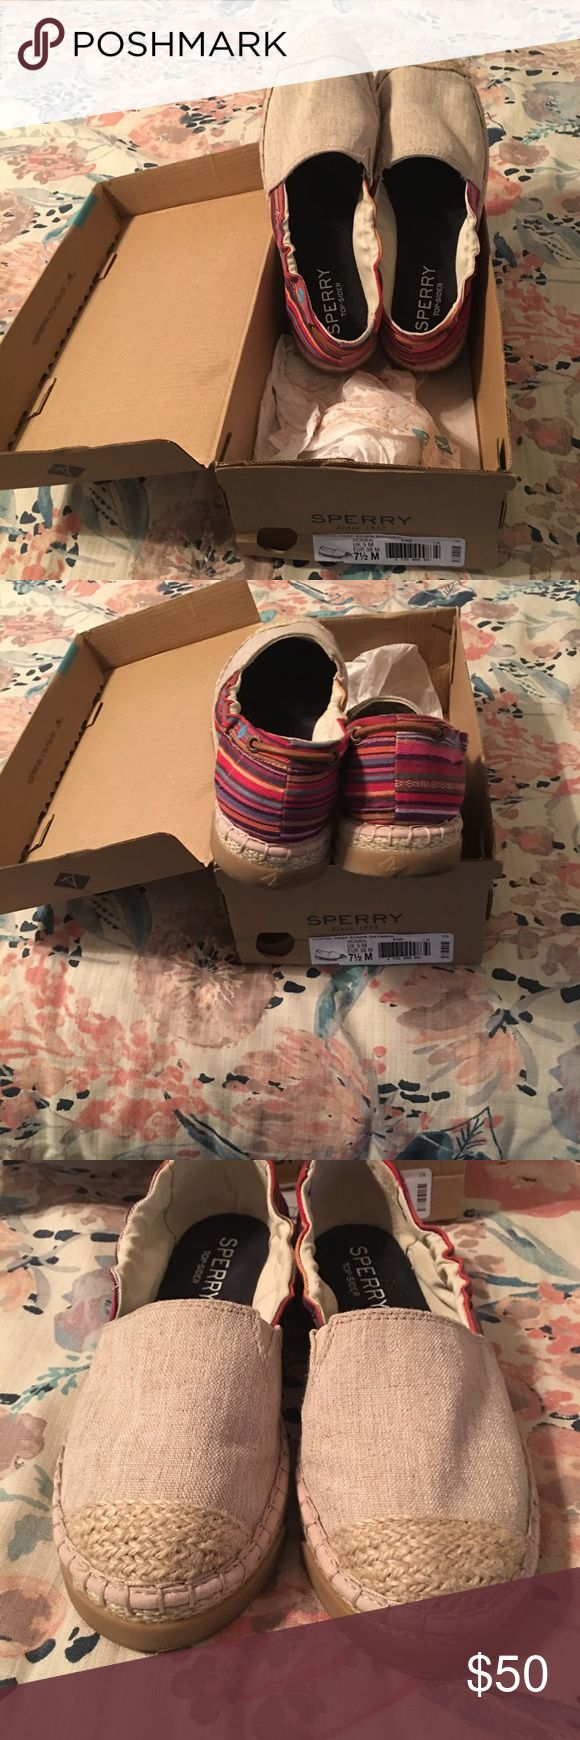 Sperry Canvas Top slider Sale🎉🎉worn once. Sperry Top sliders in excellent condition. Please make me an offer! Sperry Top-Sider Shoes Flats & Loafers